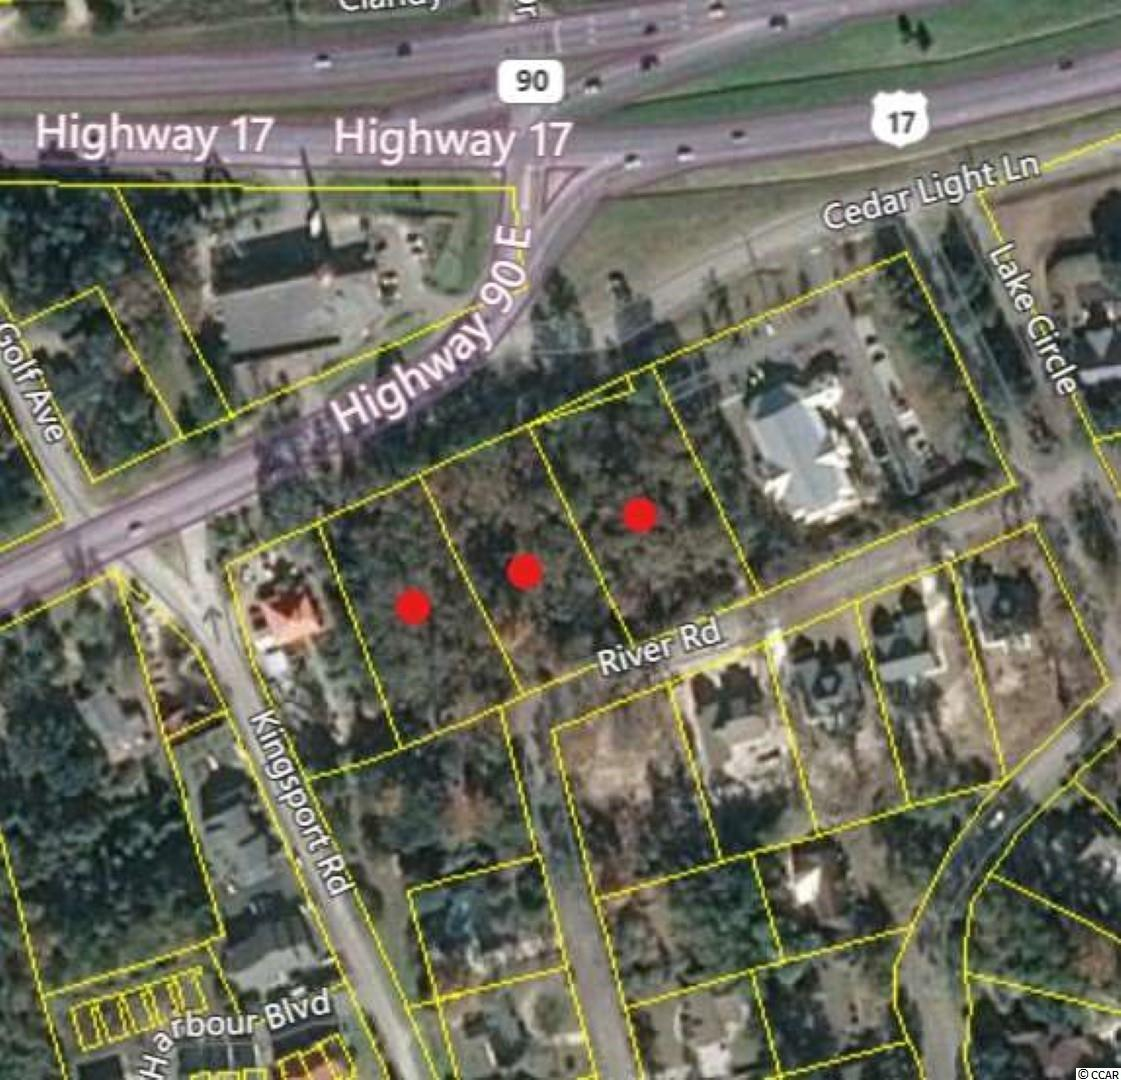 2.61 Total Acres zoned PDD (Planned Development District) with 410 feet of Road front next to the intersection of Hwy 90 and US 17 in the heart of Little River, SC. High traffic counts, high population densities, high average household income, and high average property value at the 1, 3, and 5 mile radius of this property. Area statistics are available on request. PDD zoning allows for most any type of business. A list of permittable businesses is also available on request .This commercial lot has unlimited potential and return on investment opportunity.